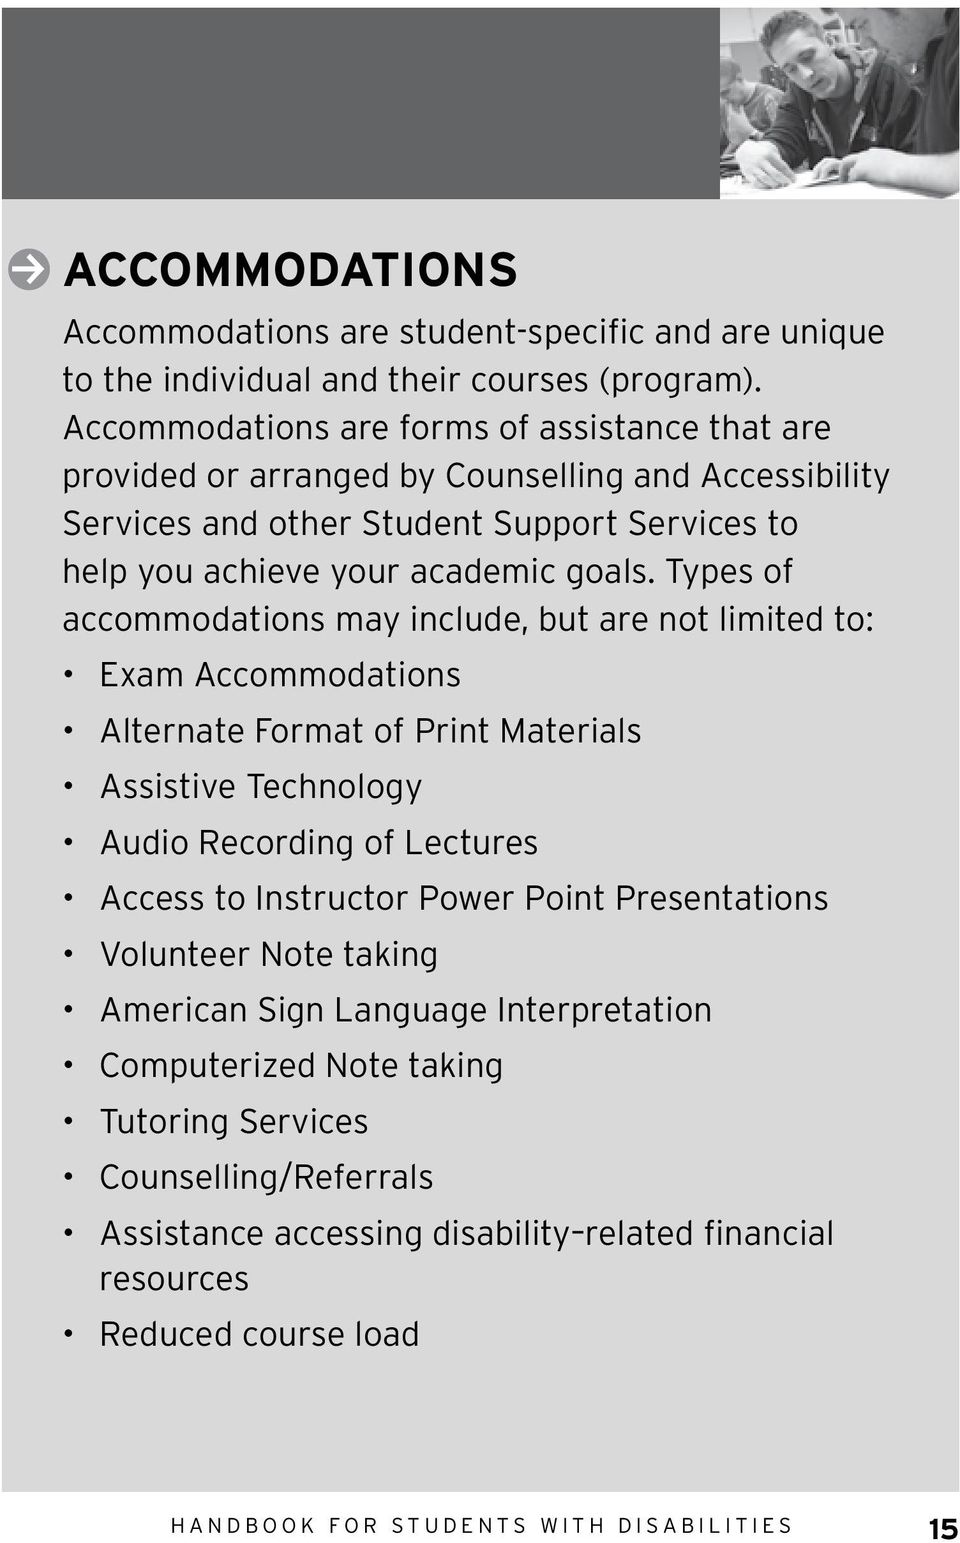 Types of accommodations may include, but are not limited to: Exam Accommodations Alternate Format of Print Materials Assistive Technology Audio Recording of Lectures Access to Instructor